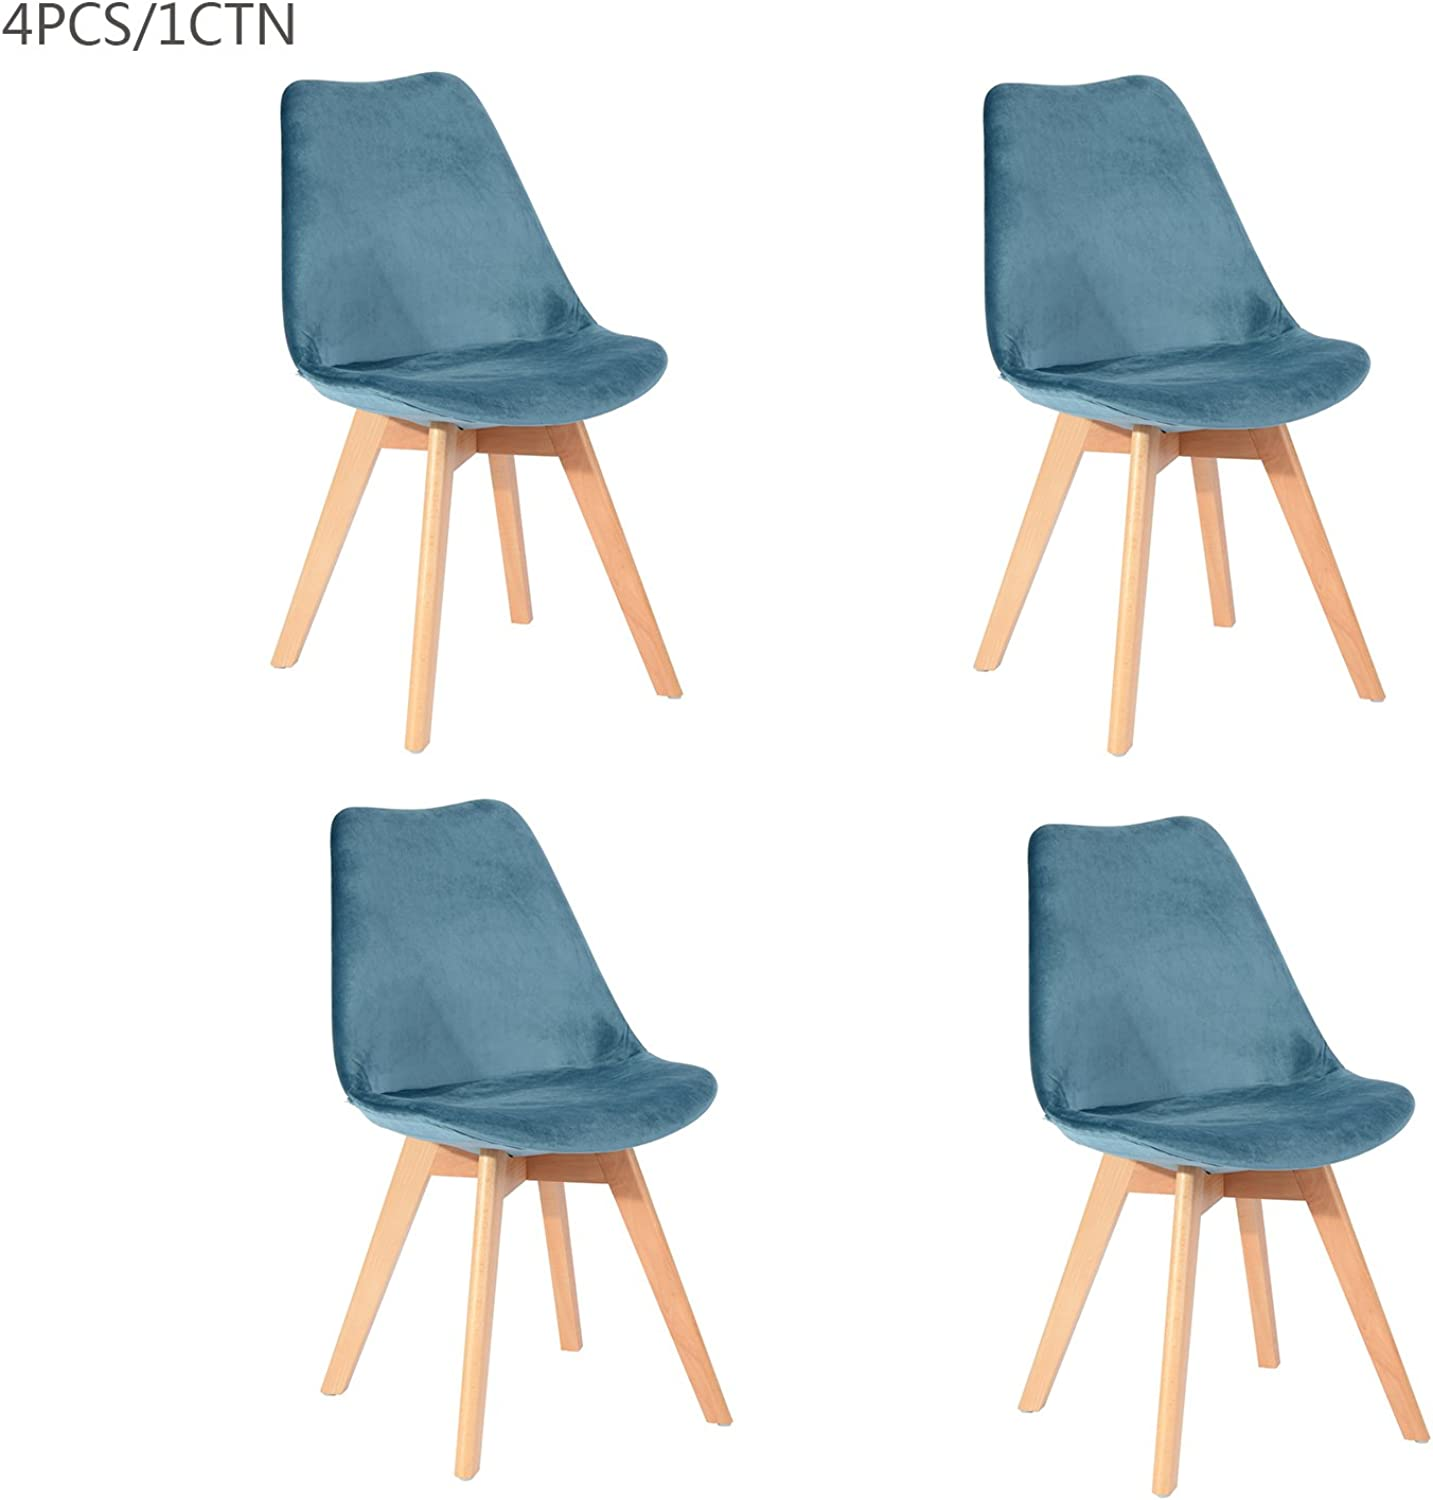 DSW Eames Chairs, Mid-Century Modern Upholstered Fabric Dining Chair with Solid Wood Legs (Sets of 4) (bluee Velvet 4PCS)